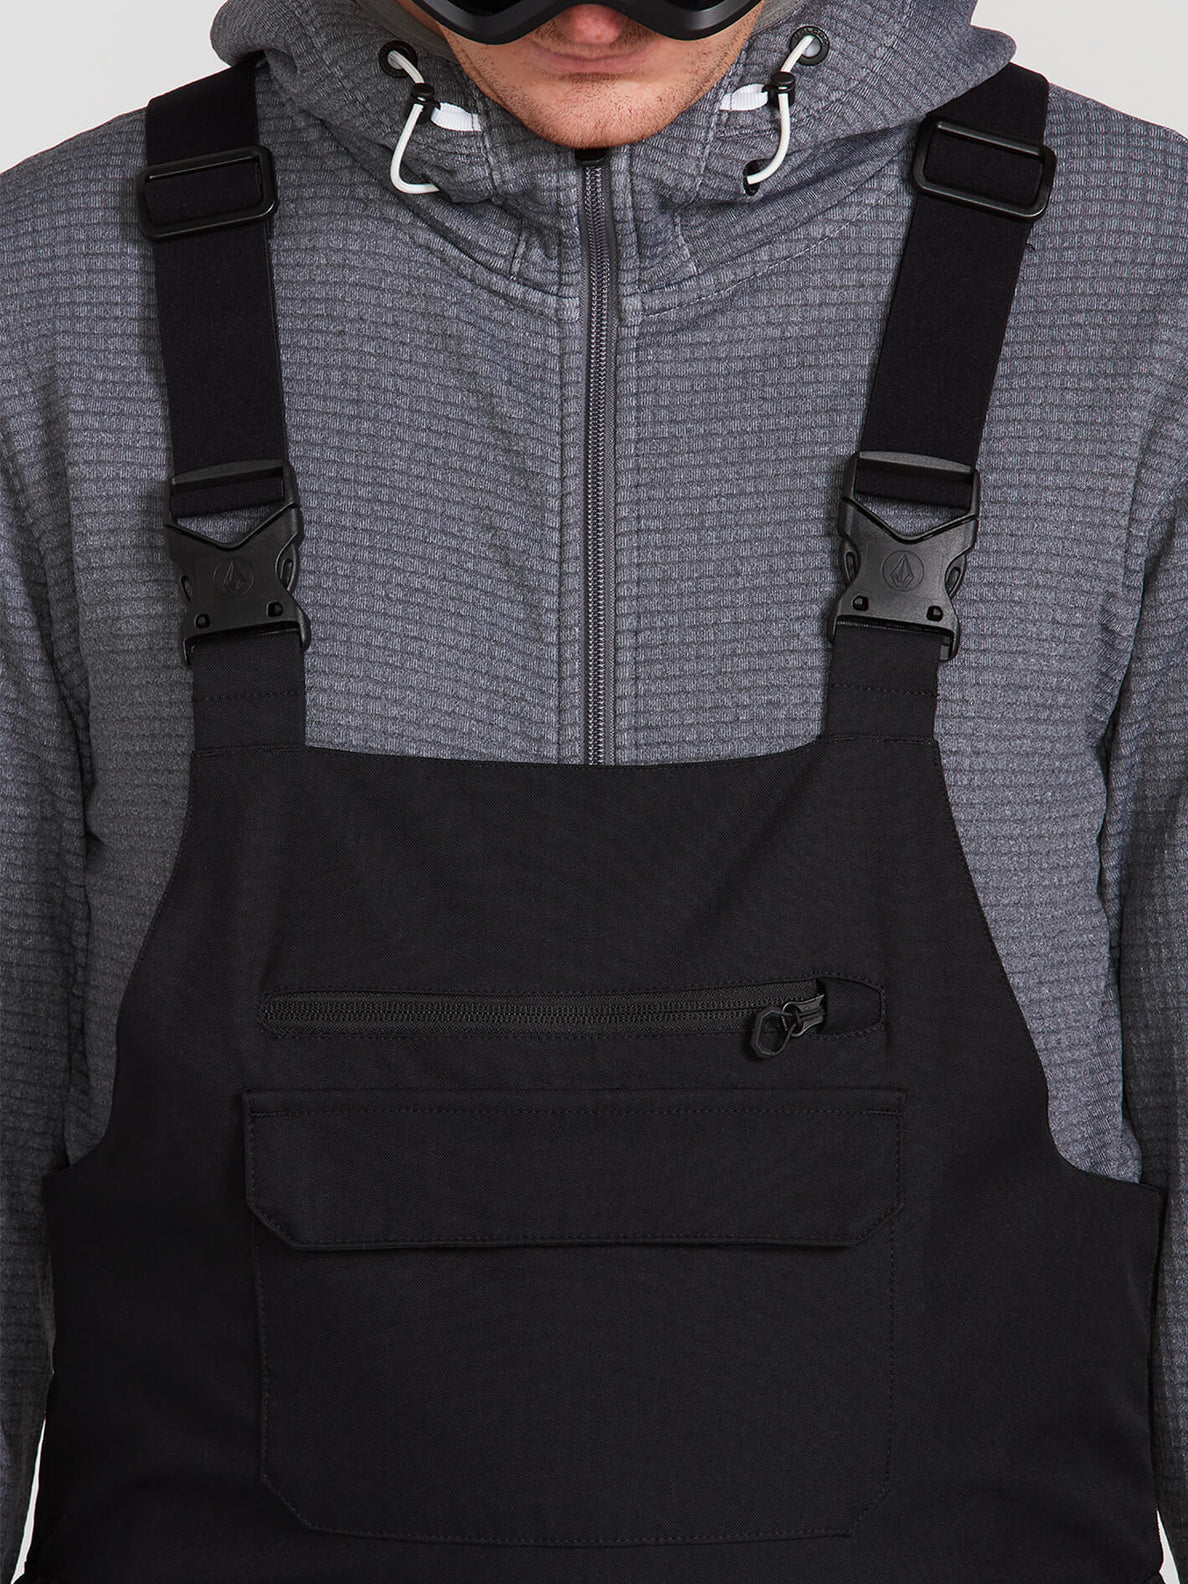 Roan Bib Overall - Navy (G1351909_NVY) [2]